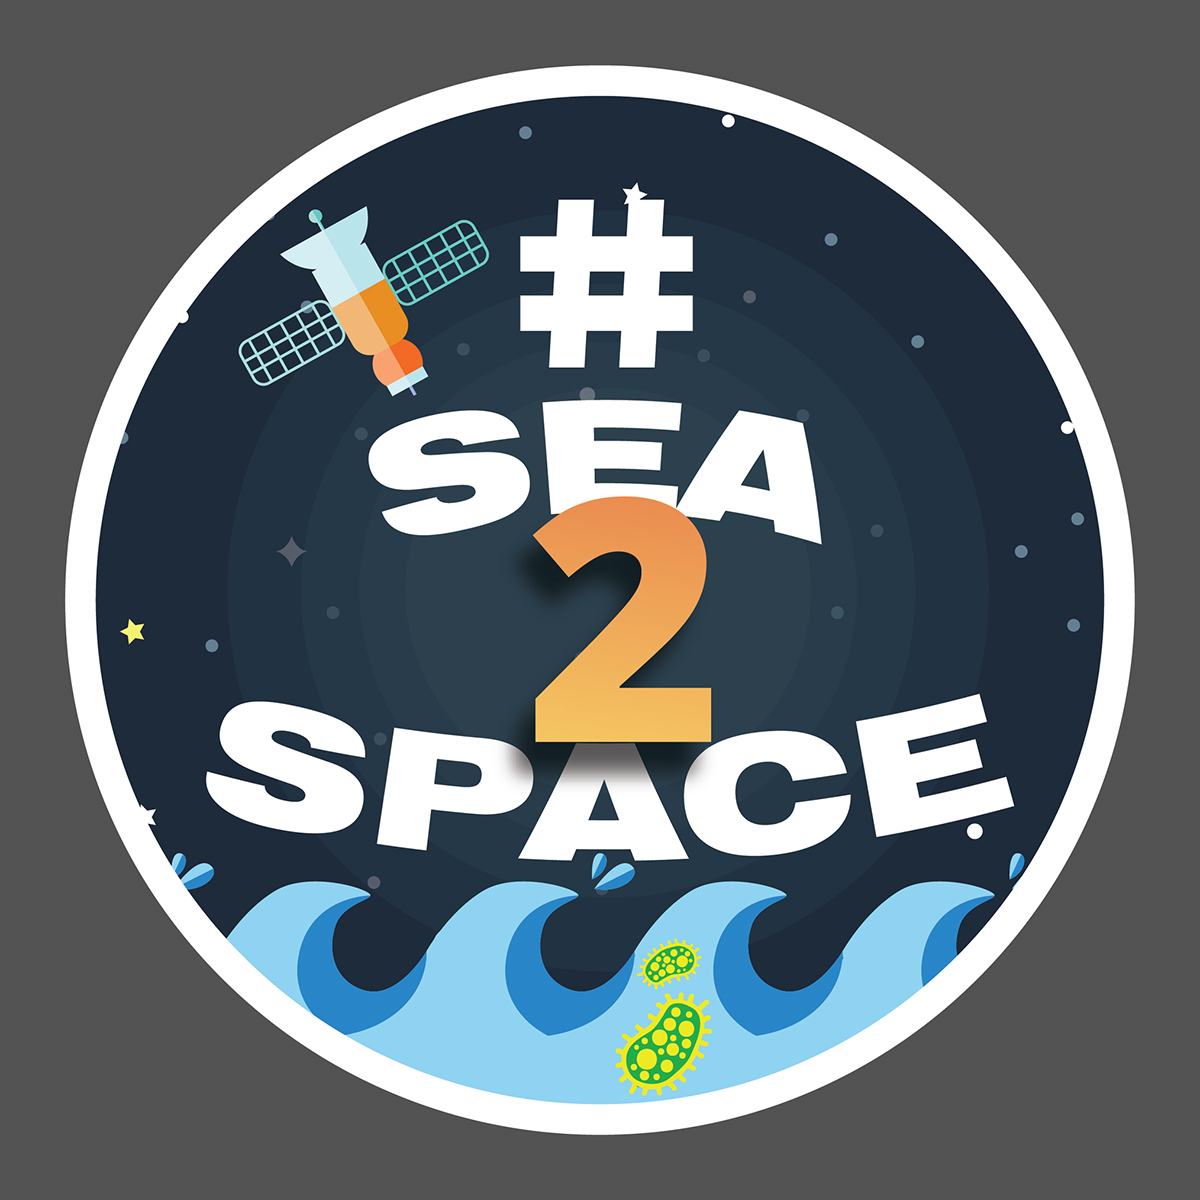 Sea 2 Space logo